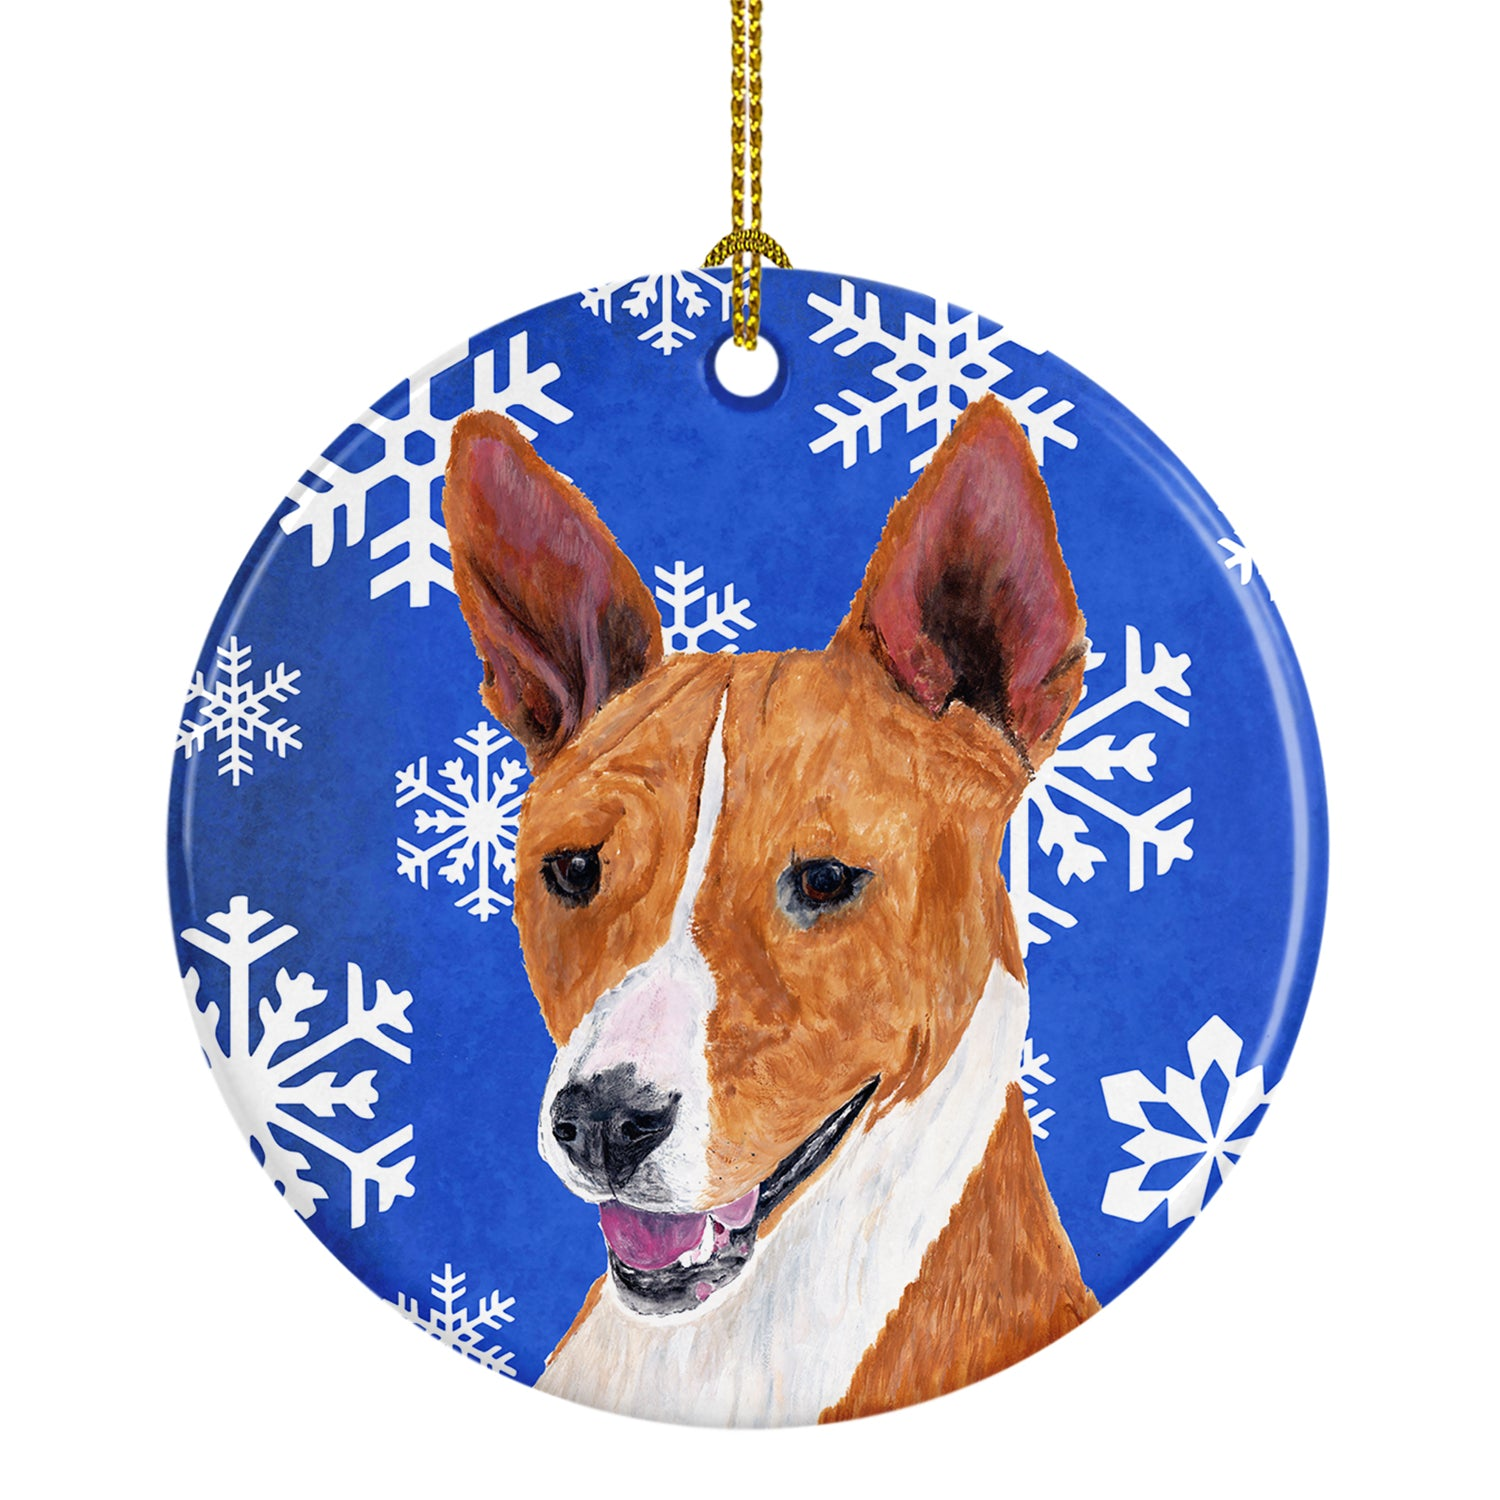 Basenji Winter Snowflakes Holiday Ceramic Ornament SC9387 by Caroline's Treasures